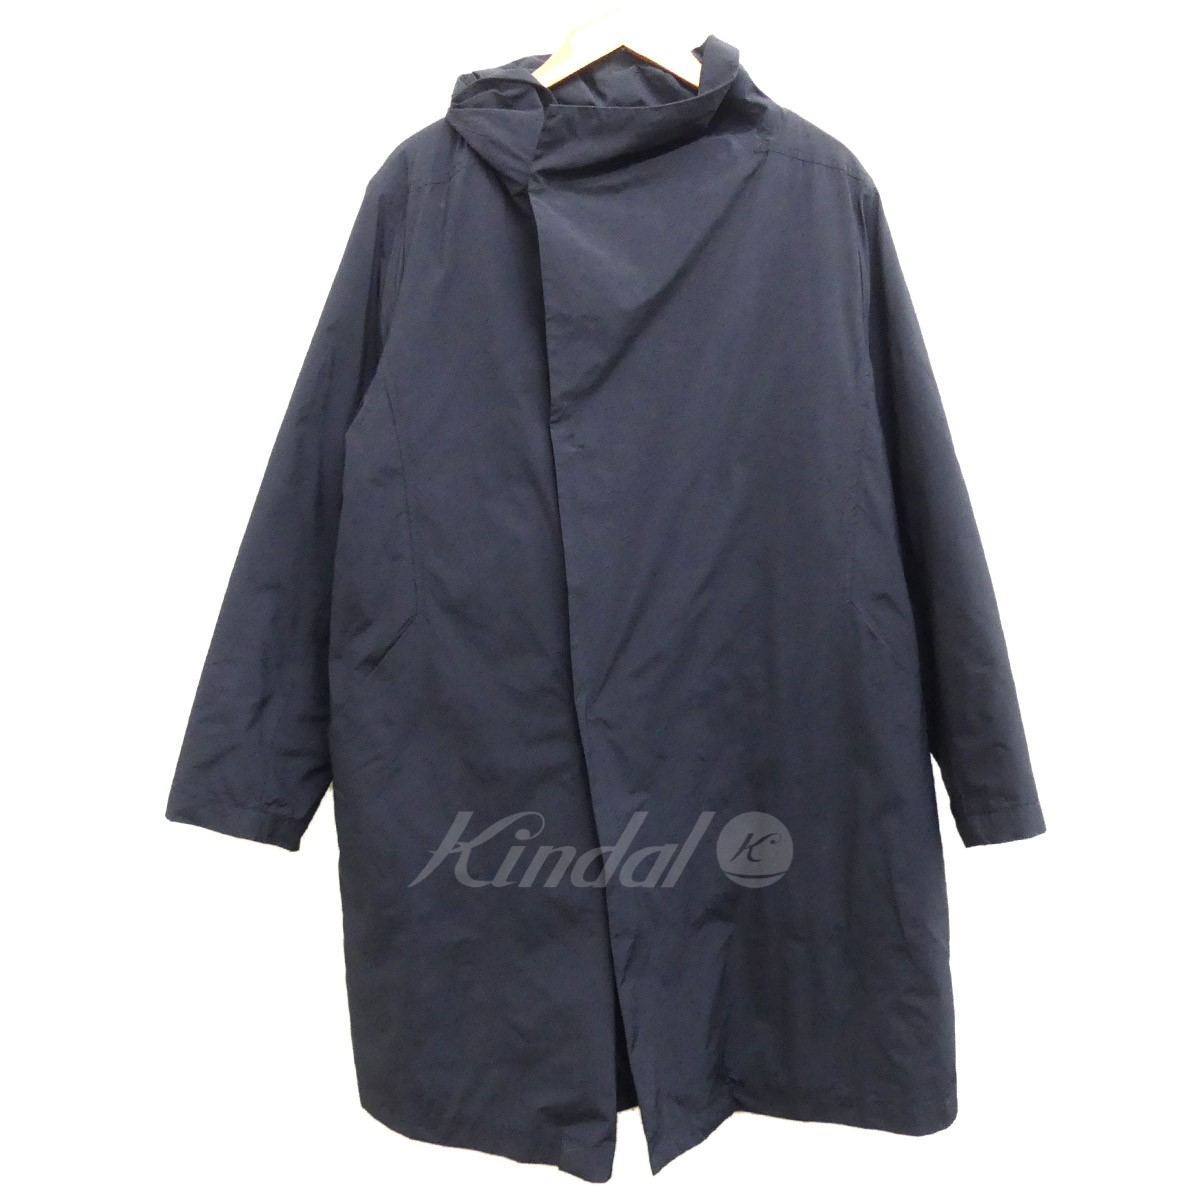 【中古】Plantation Warm Taffeta 中綿コート 2017AW 【送料無料】 【166611】 【KIND1551】